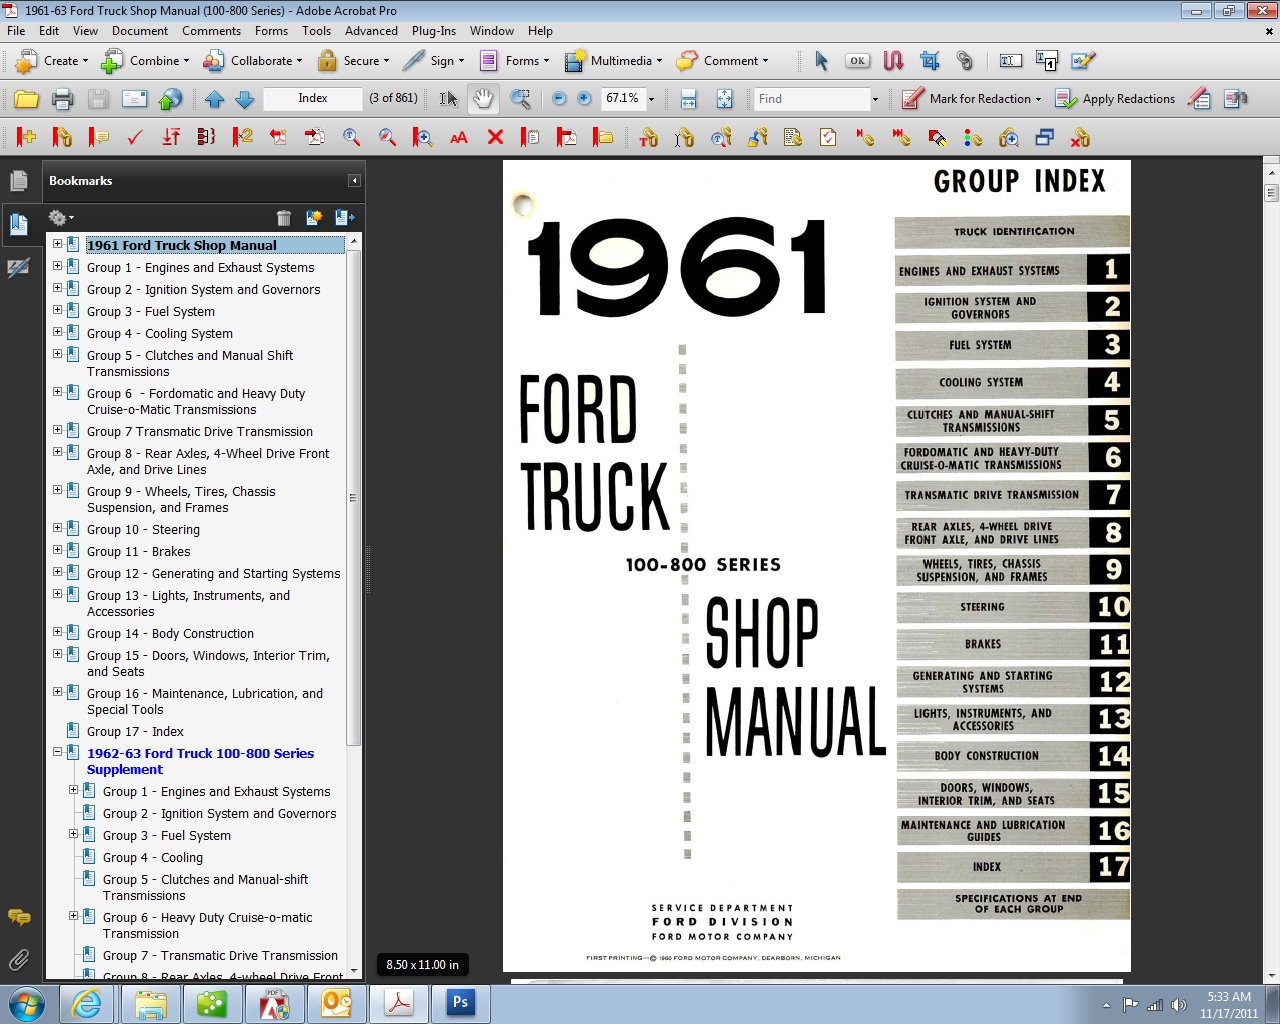 1961 1963 Ford F 250 Wiring Diagram House Symbols 1968 Engine 63 Truck Shop Manual Motor Company David E Leblanc Rh Amazon Com 1999 1992